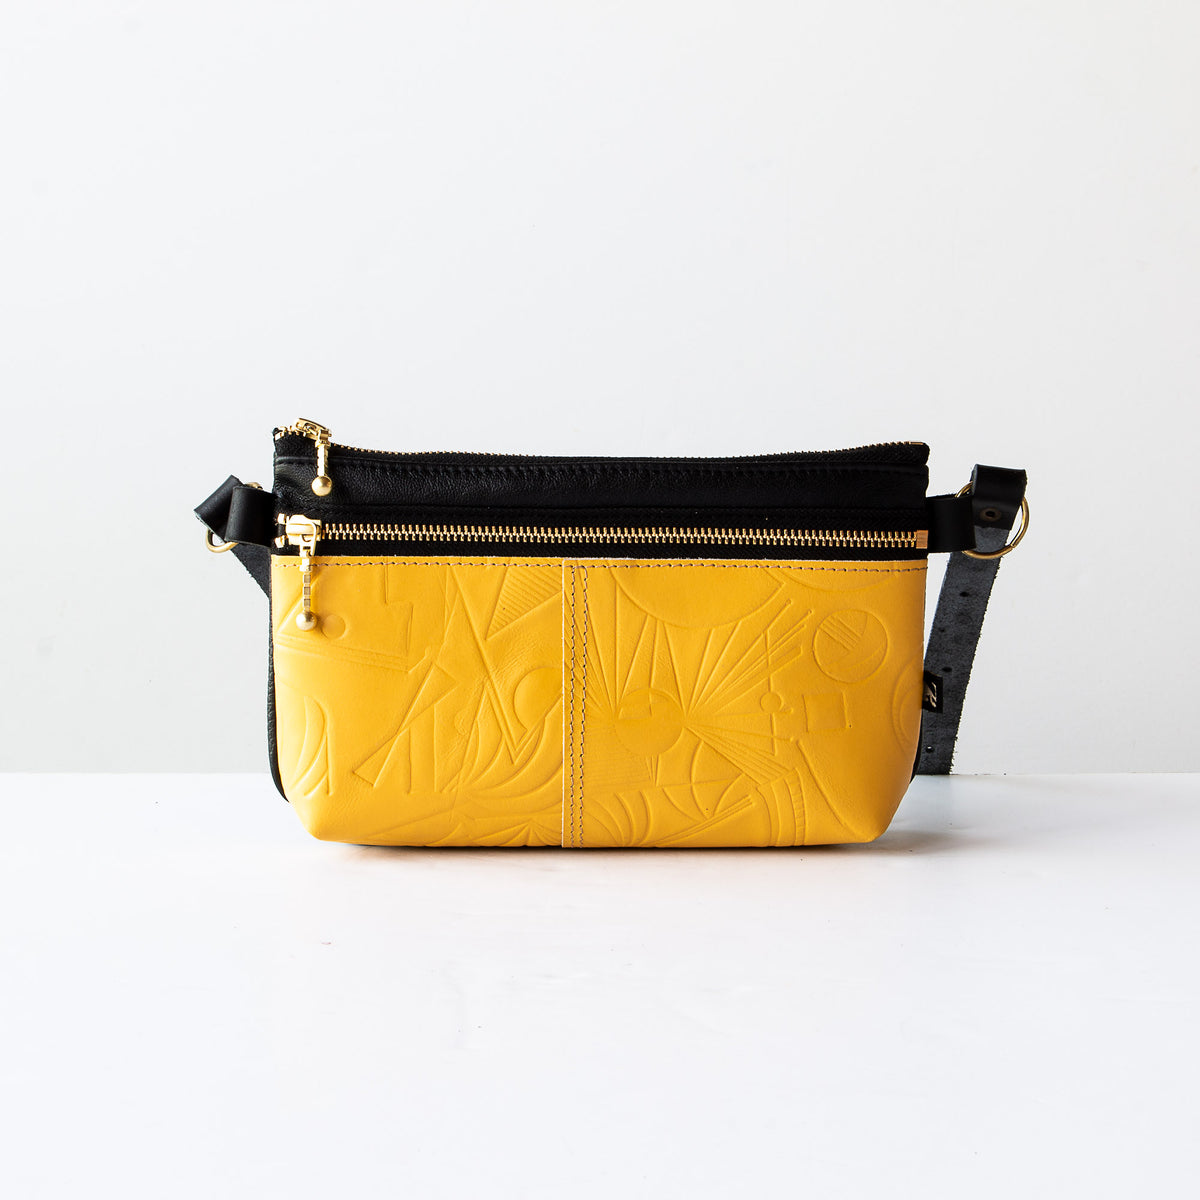 Glendale Waist Pouch / Bag / Clutch - Yellow / Recycled Leather - Sold by Chic & Basta